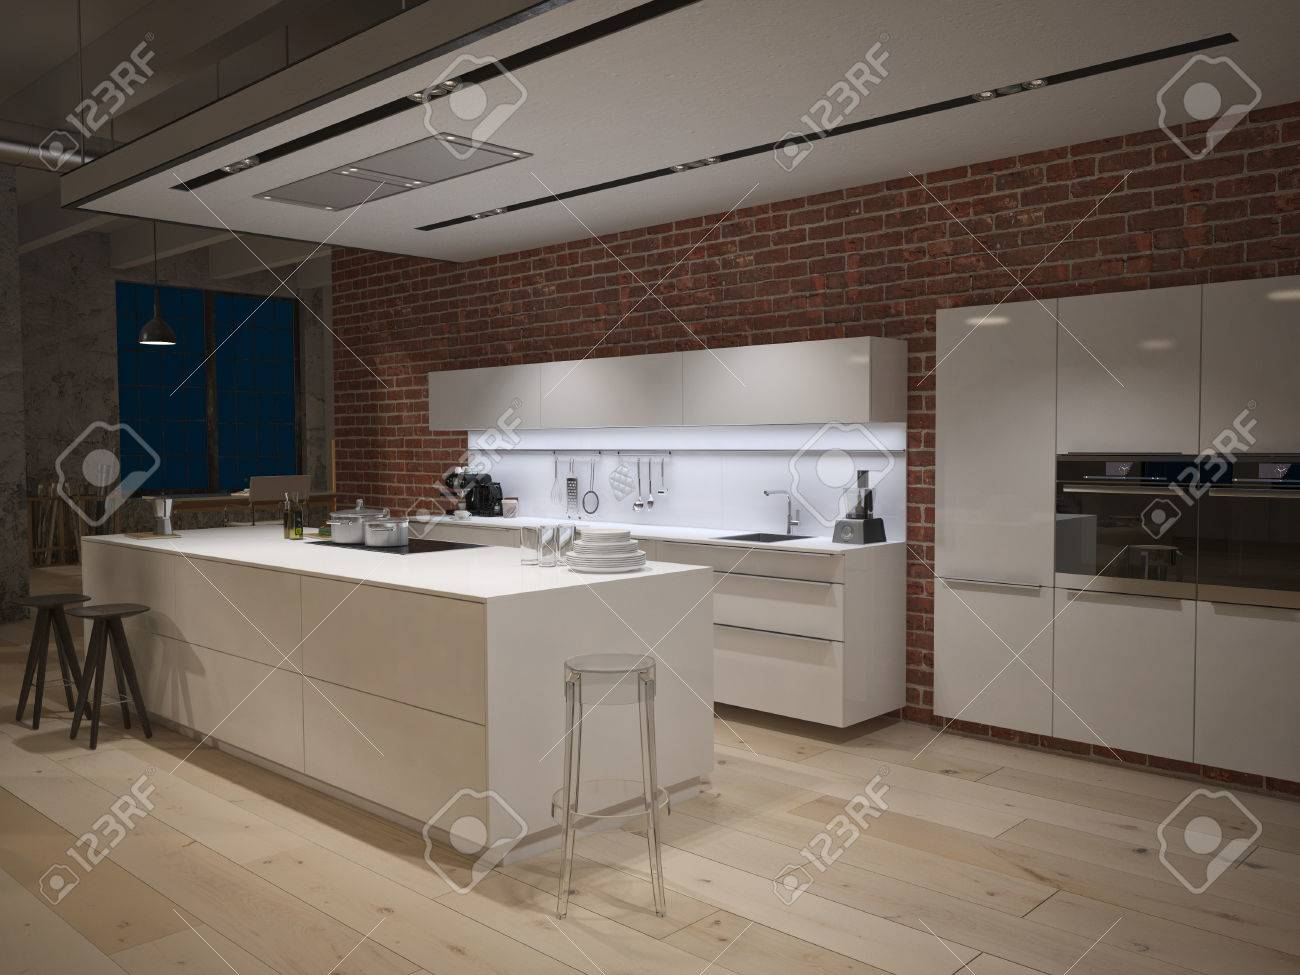 Full Size of Contemporary Steel Kitchen In Converted Industrial Loft. 3d Rendering Küche Industrie Küche